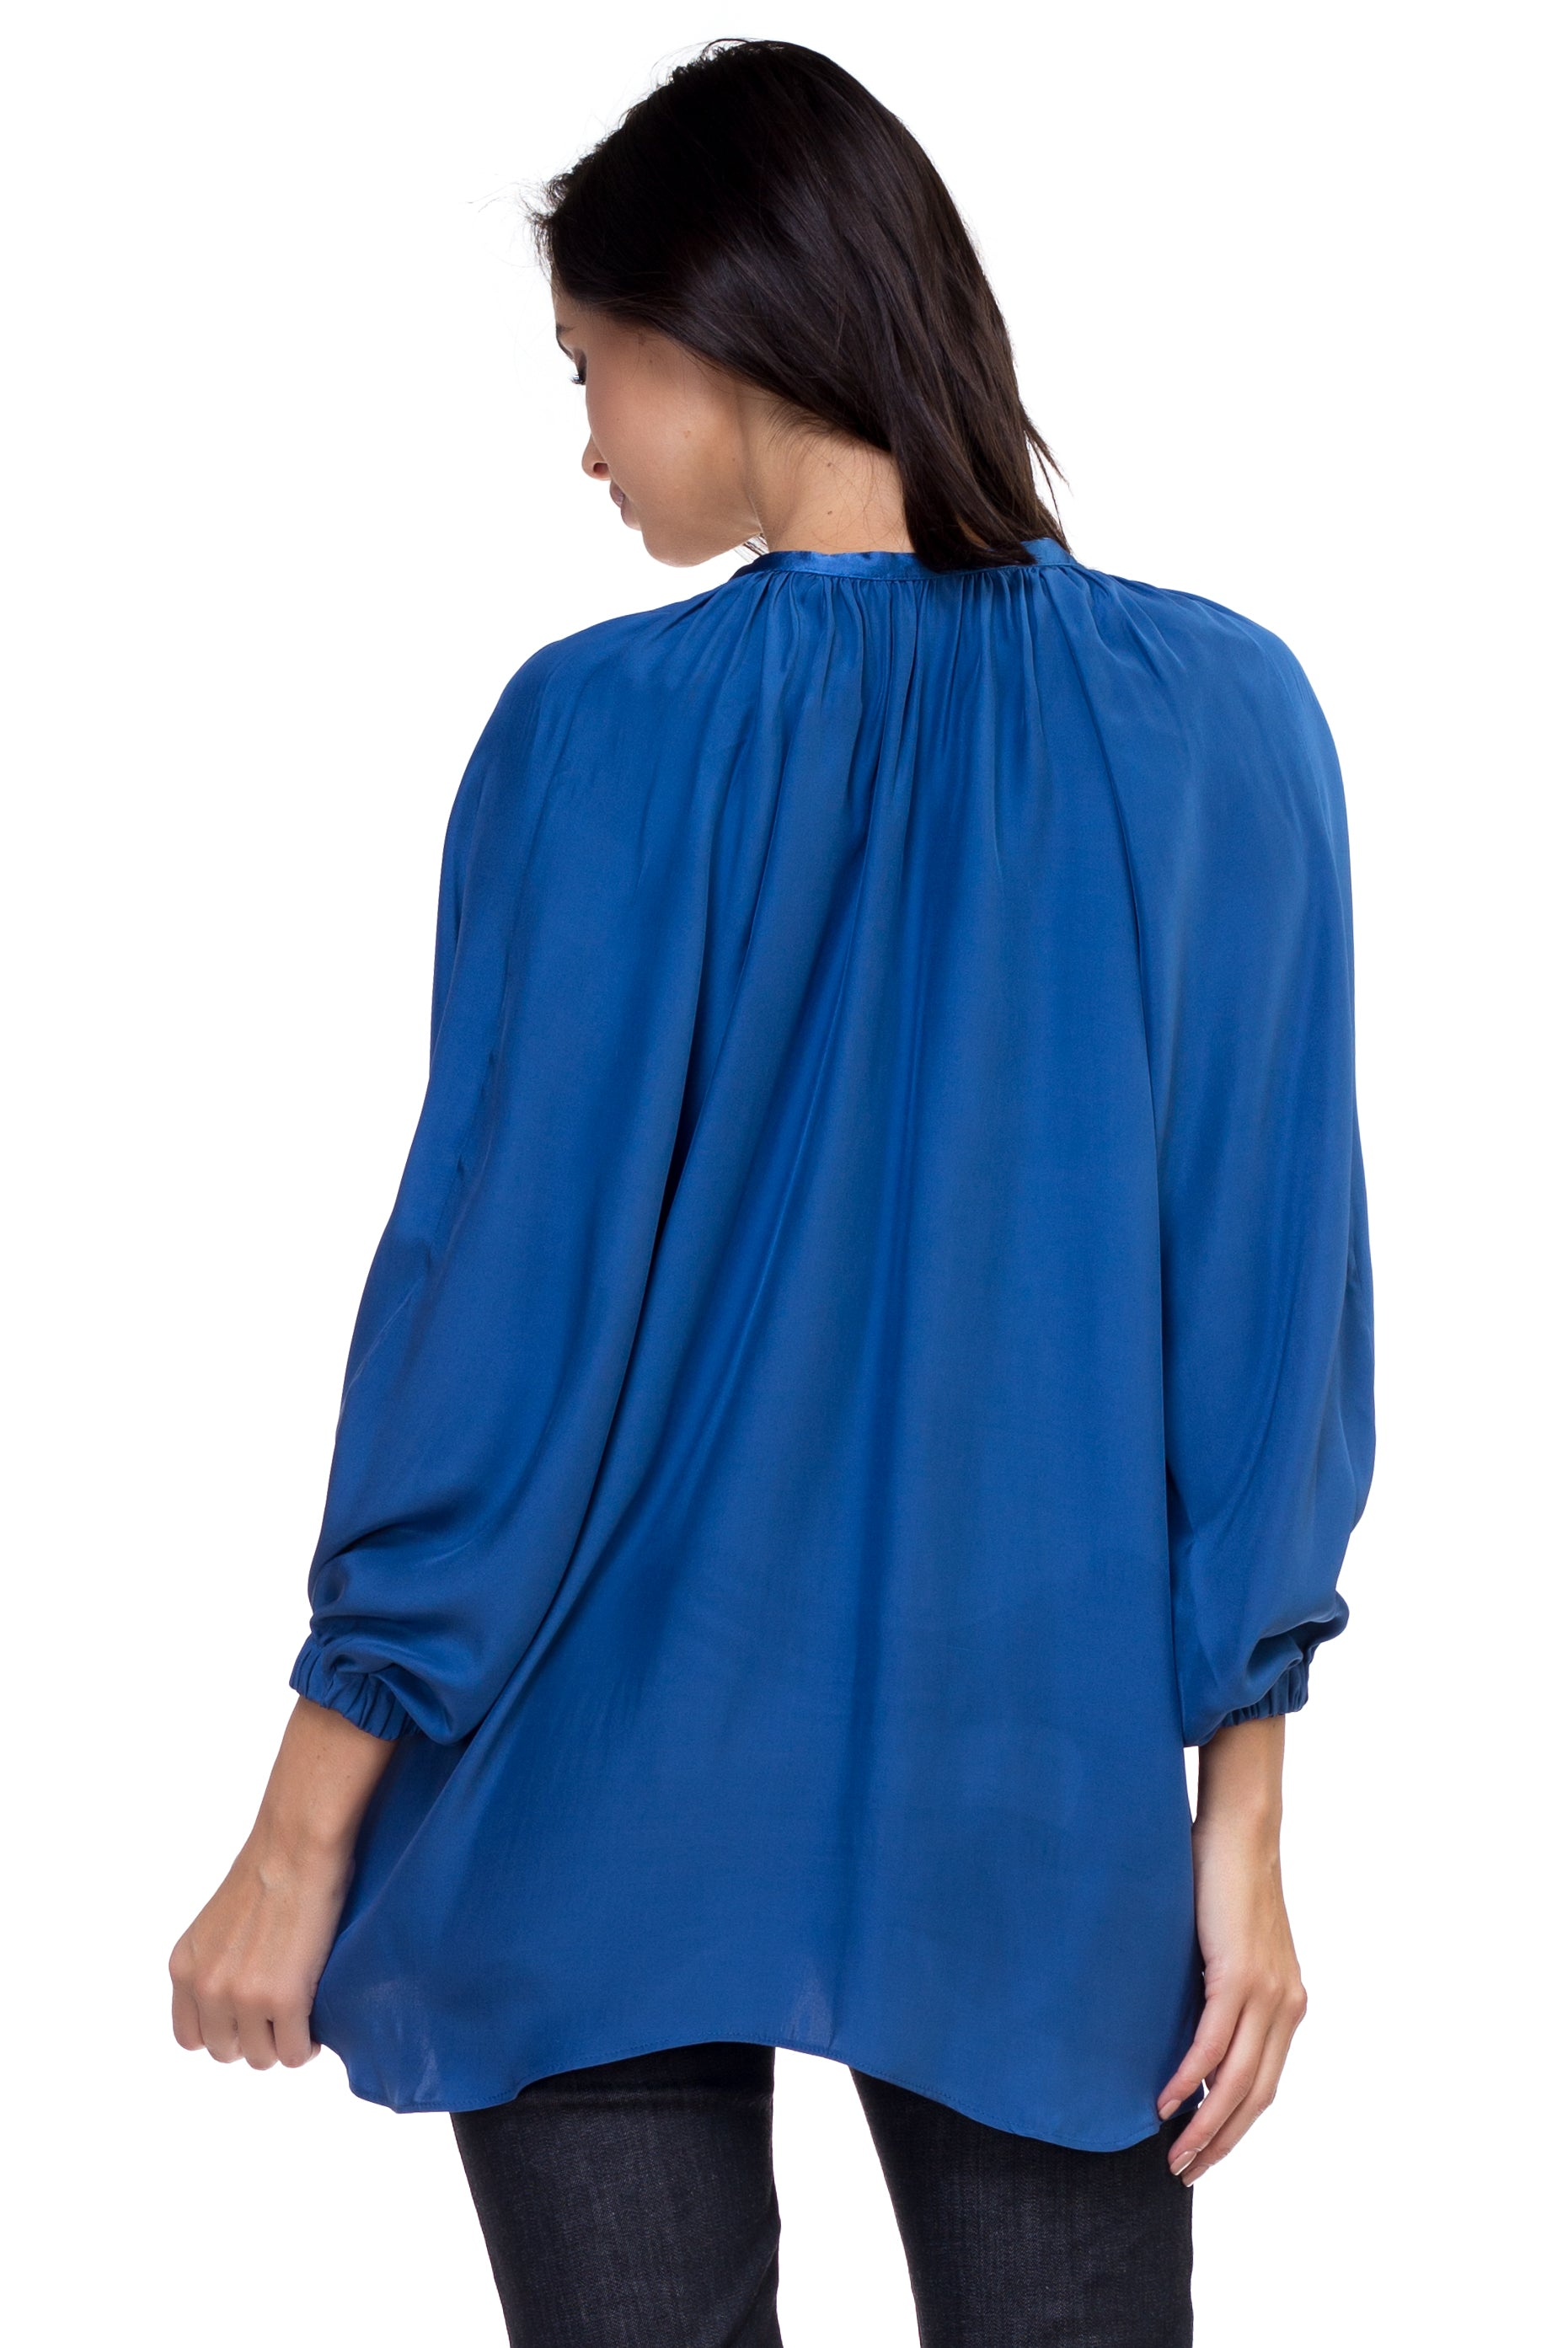 Ana - Airy Silk Blouse Ocean Blue